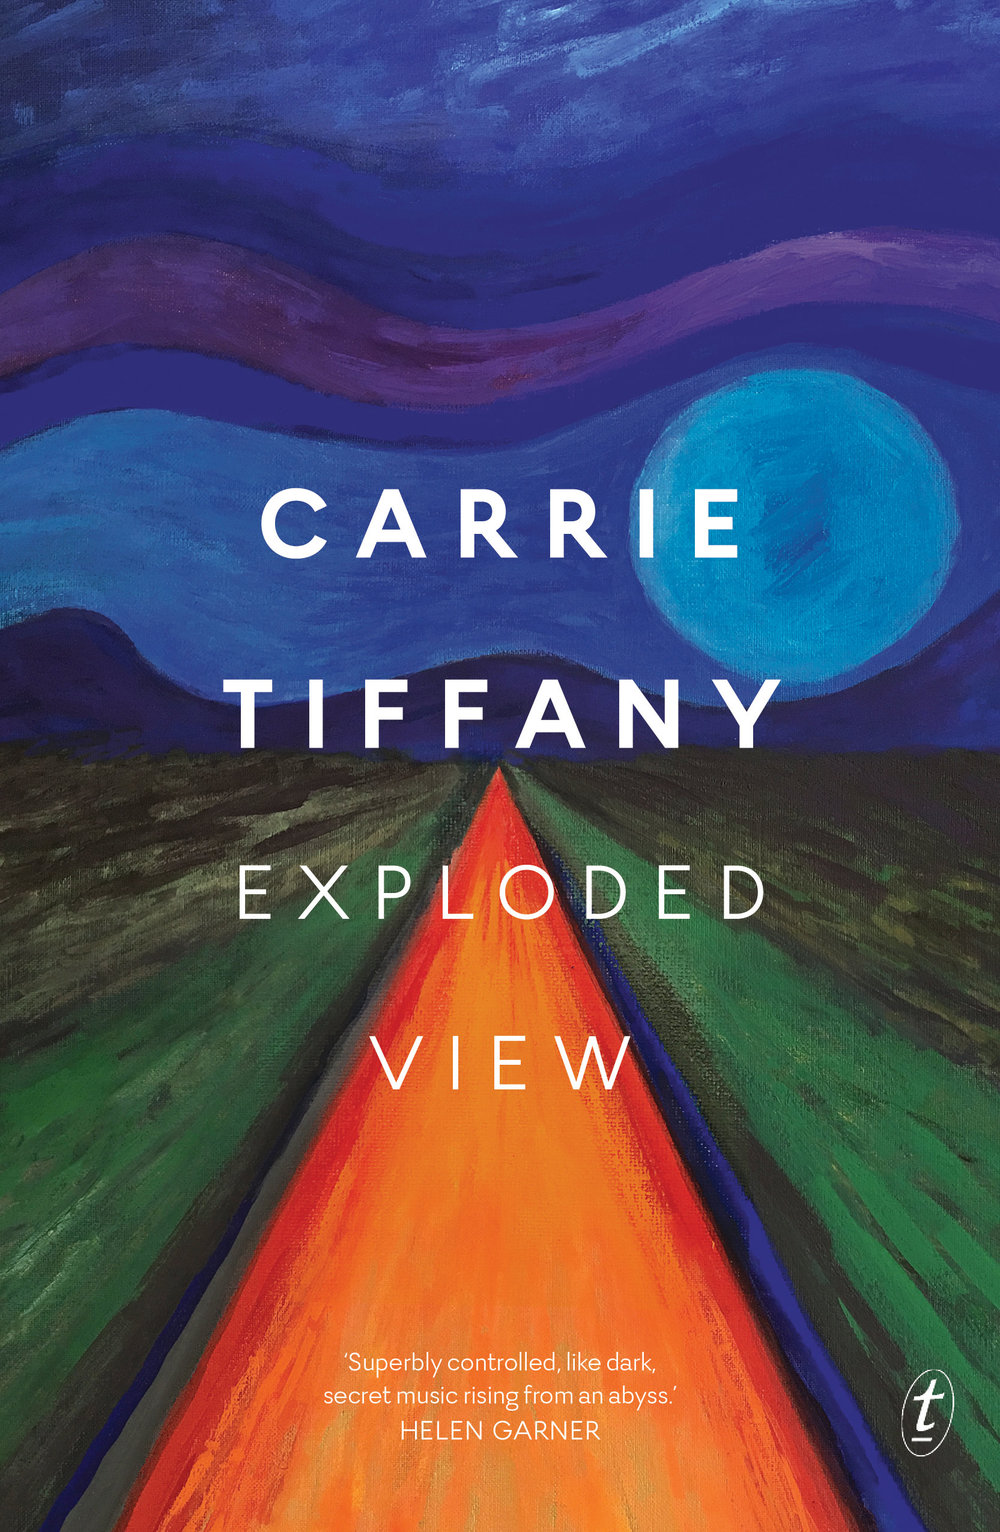 carrie tiffany exploded view.jpg